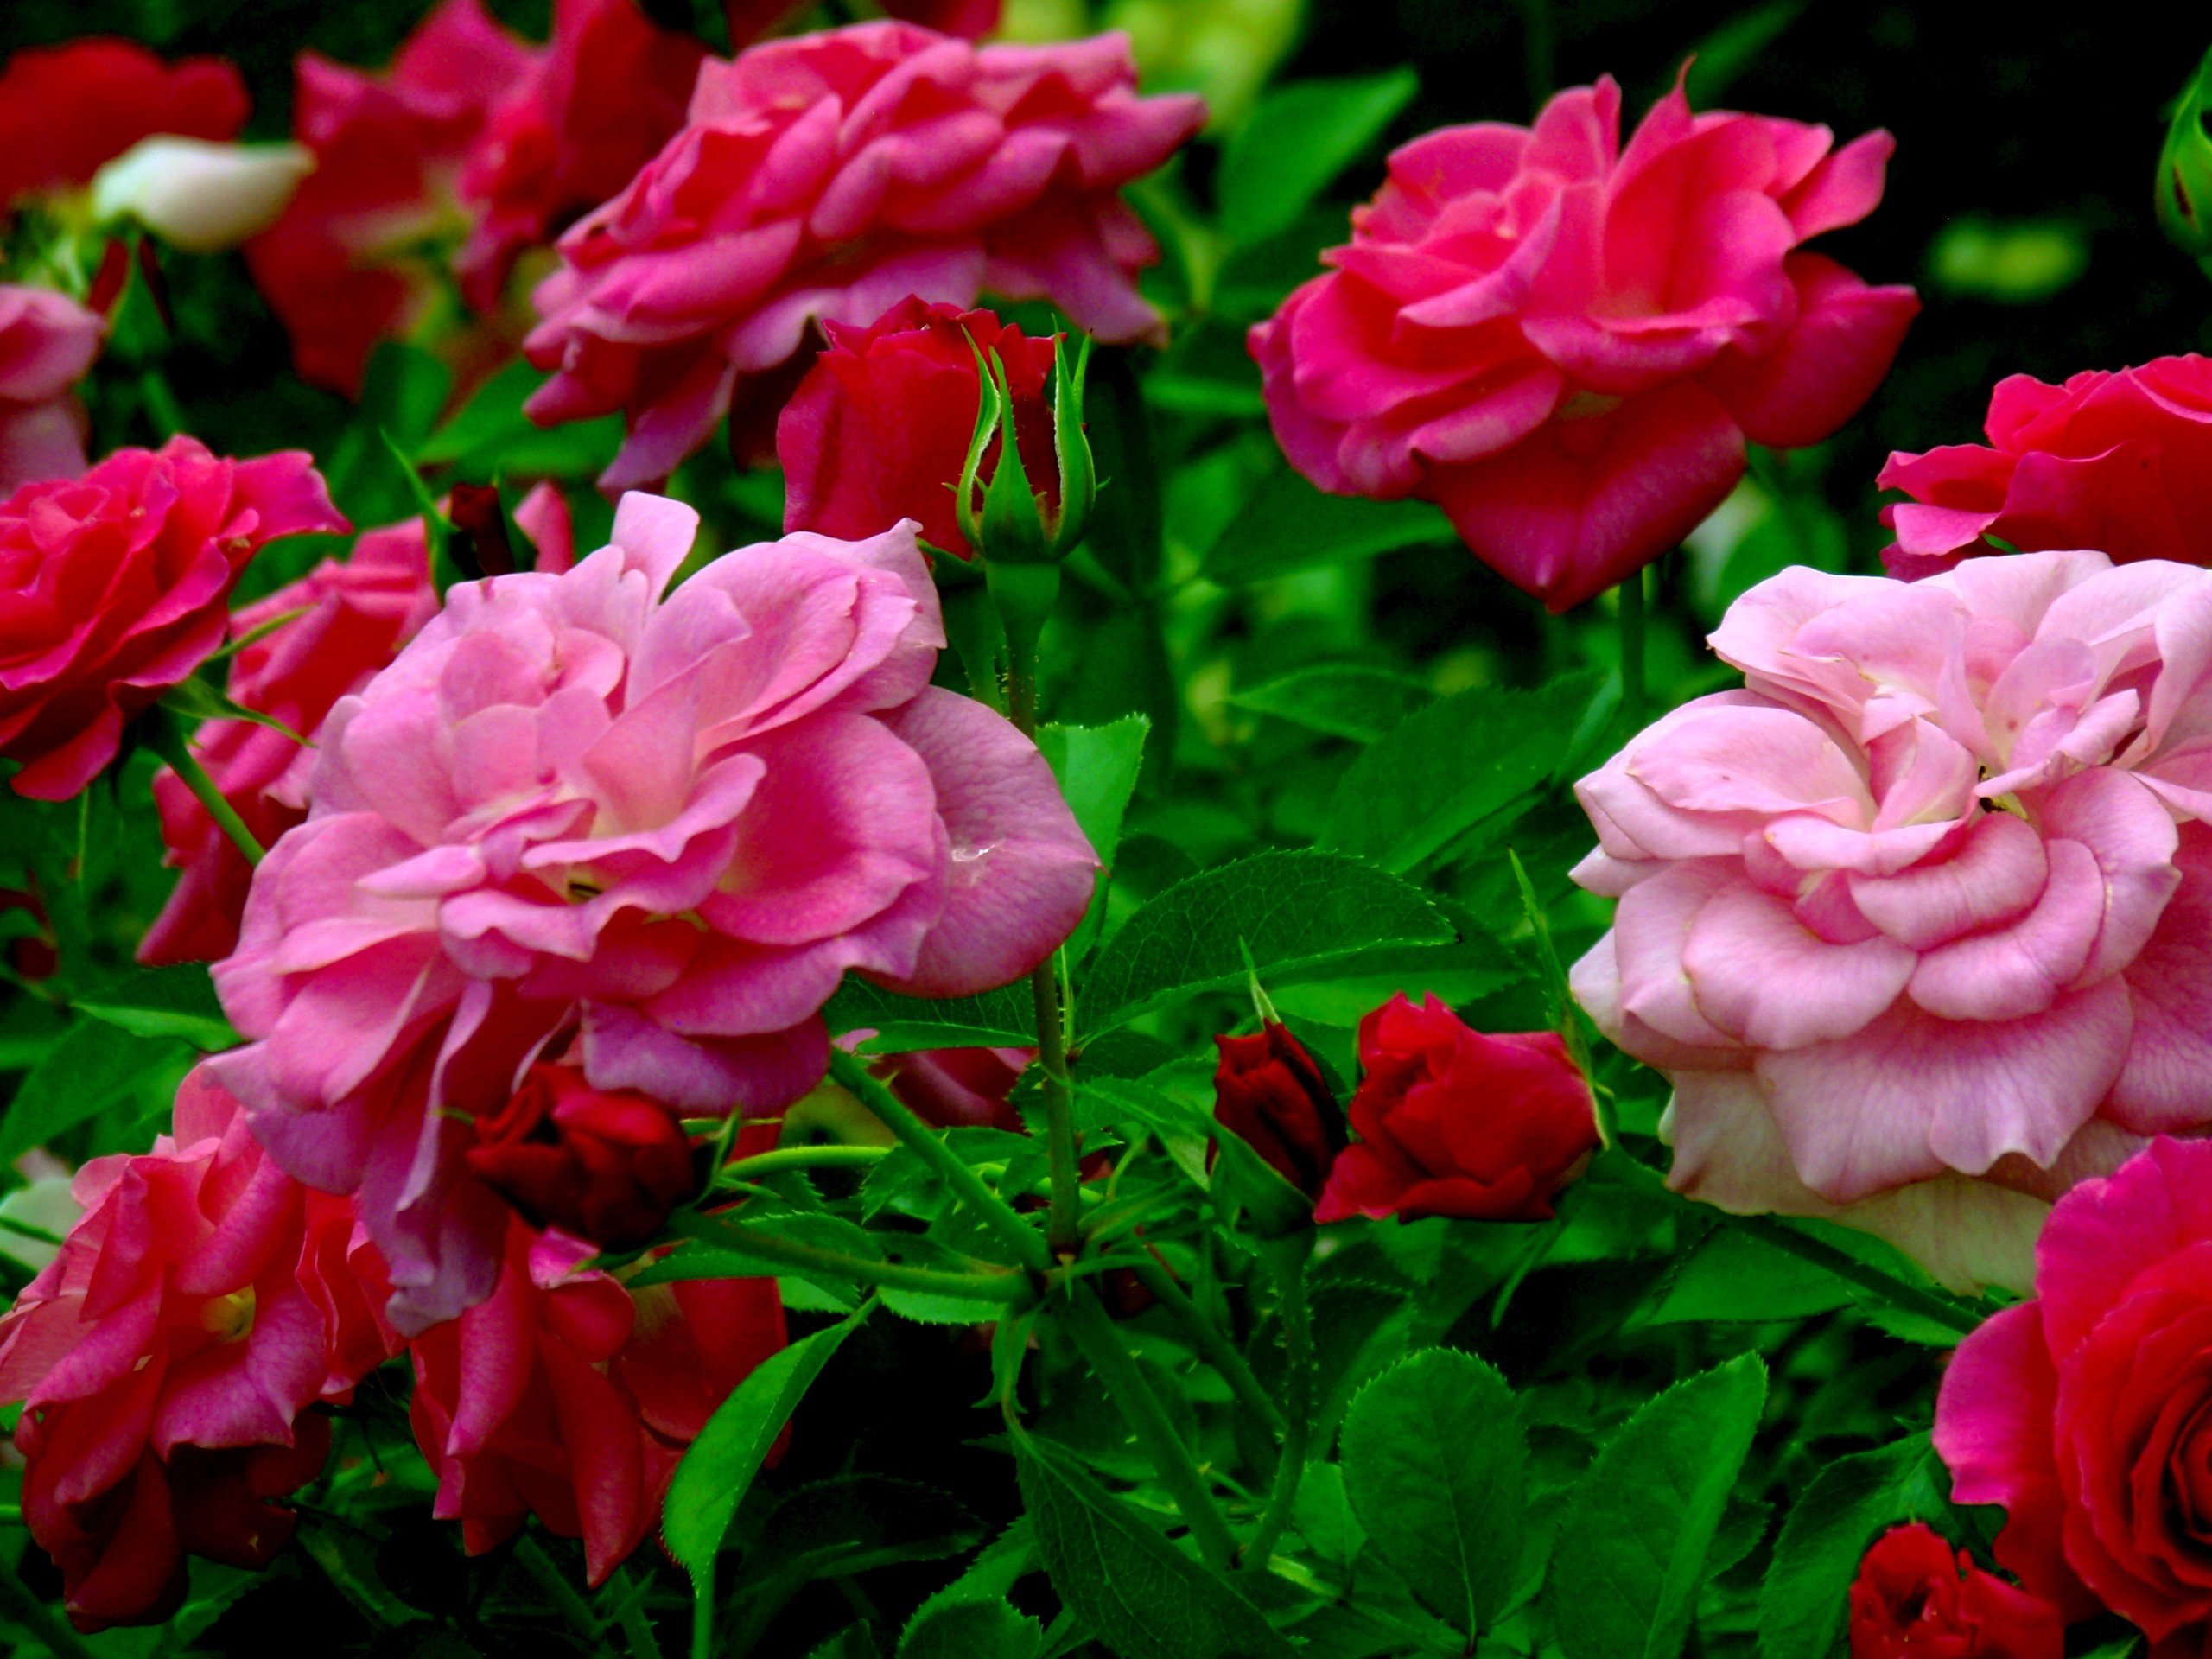 Light and dark pink roses hd wallpaper background image - Pink rose black background wallpaper ...